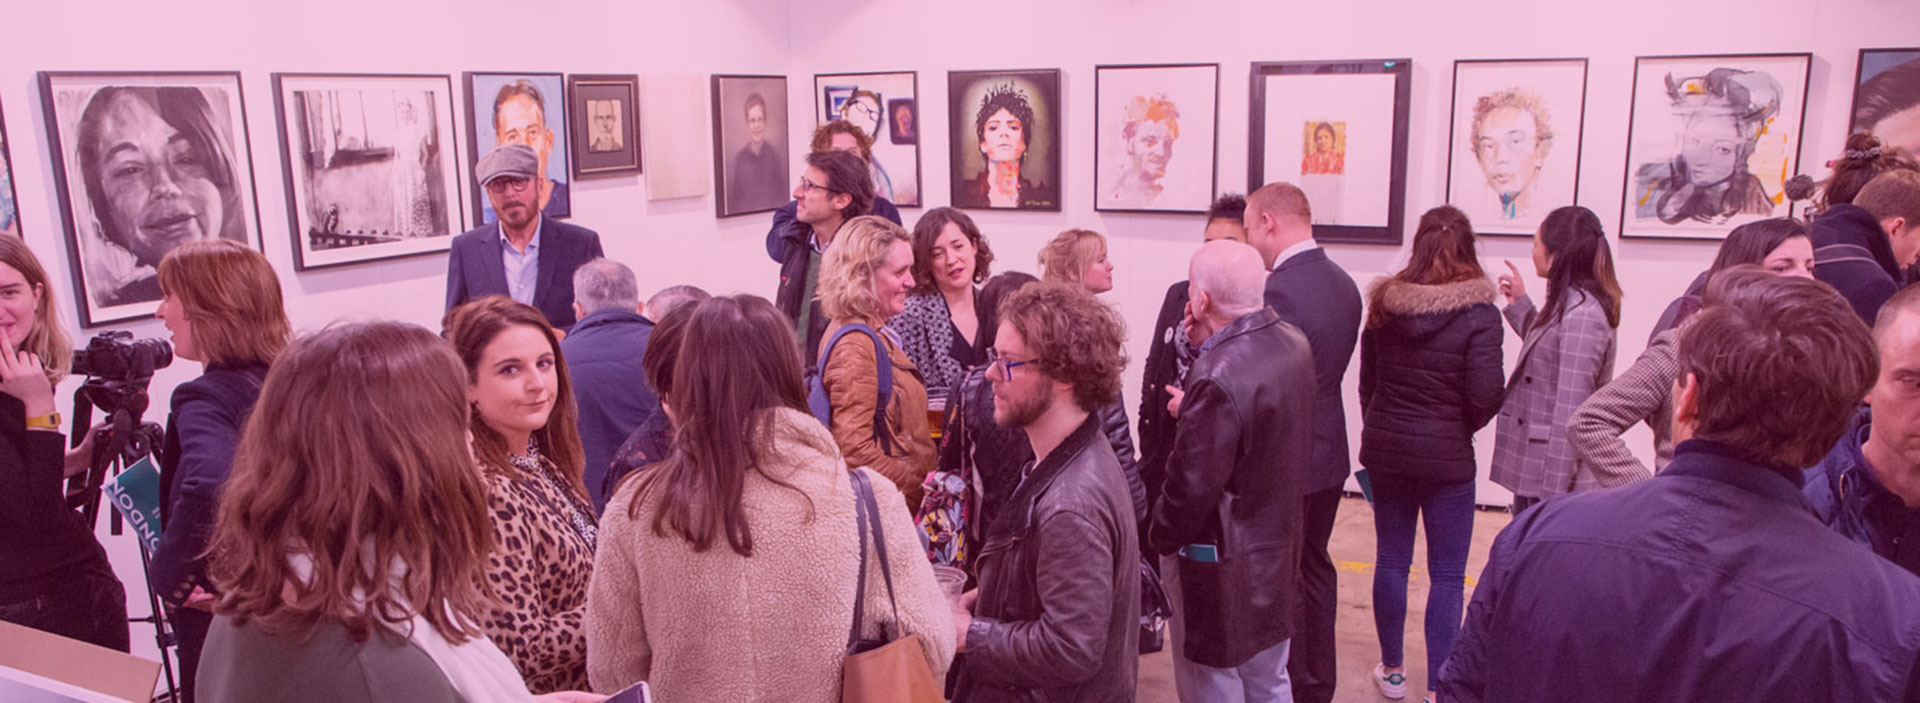 Crowds at Missing People exhibition Unmissable